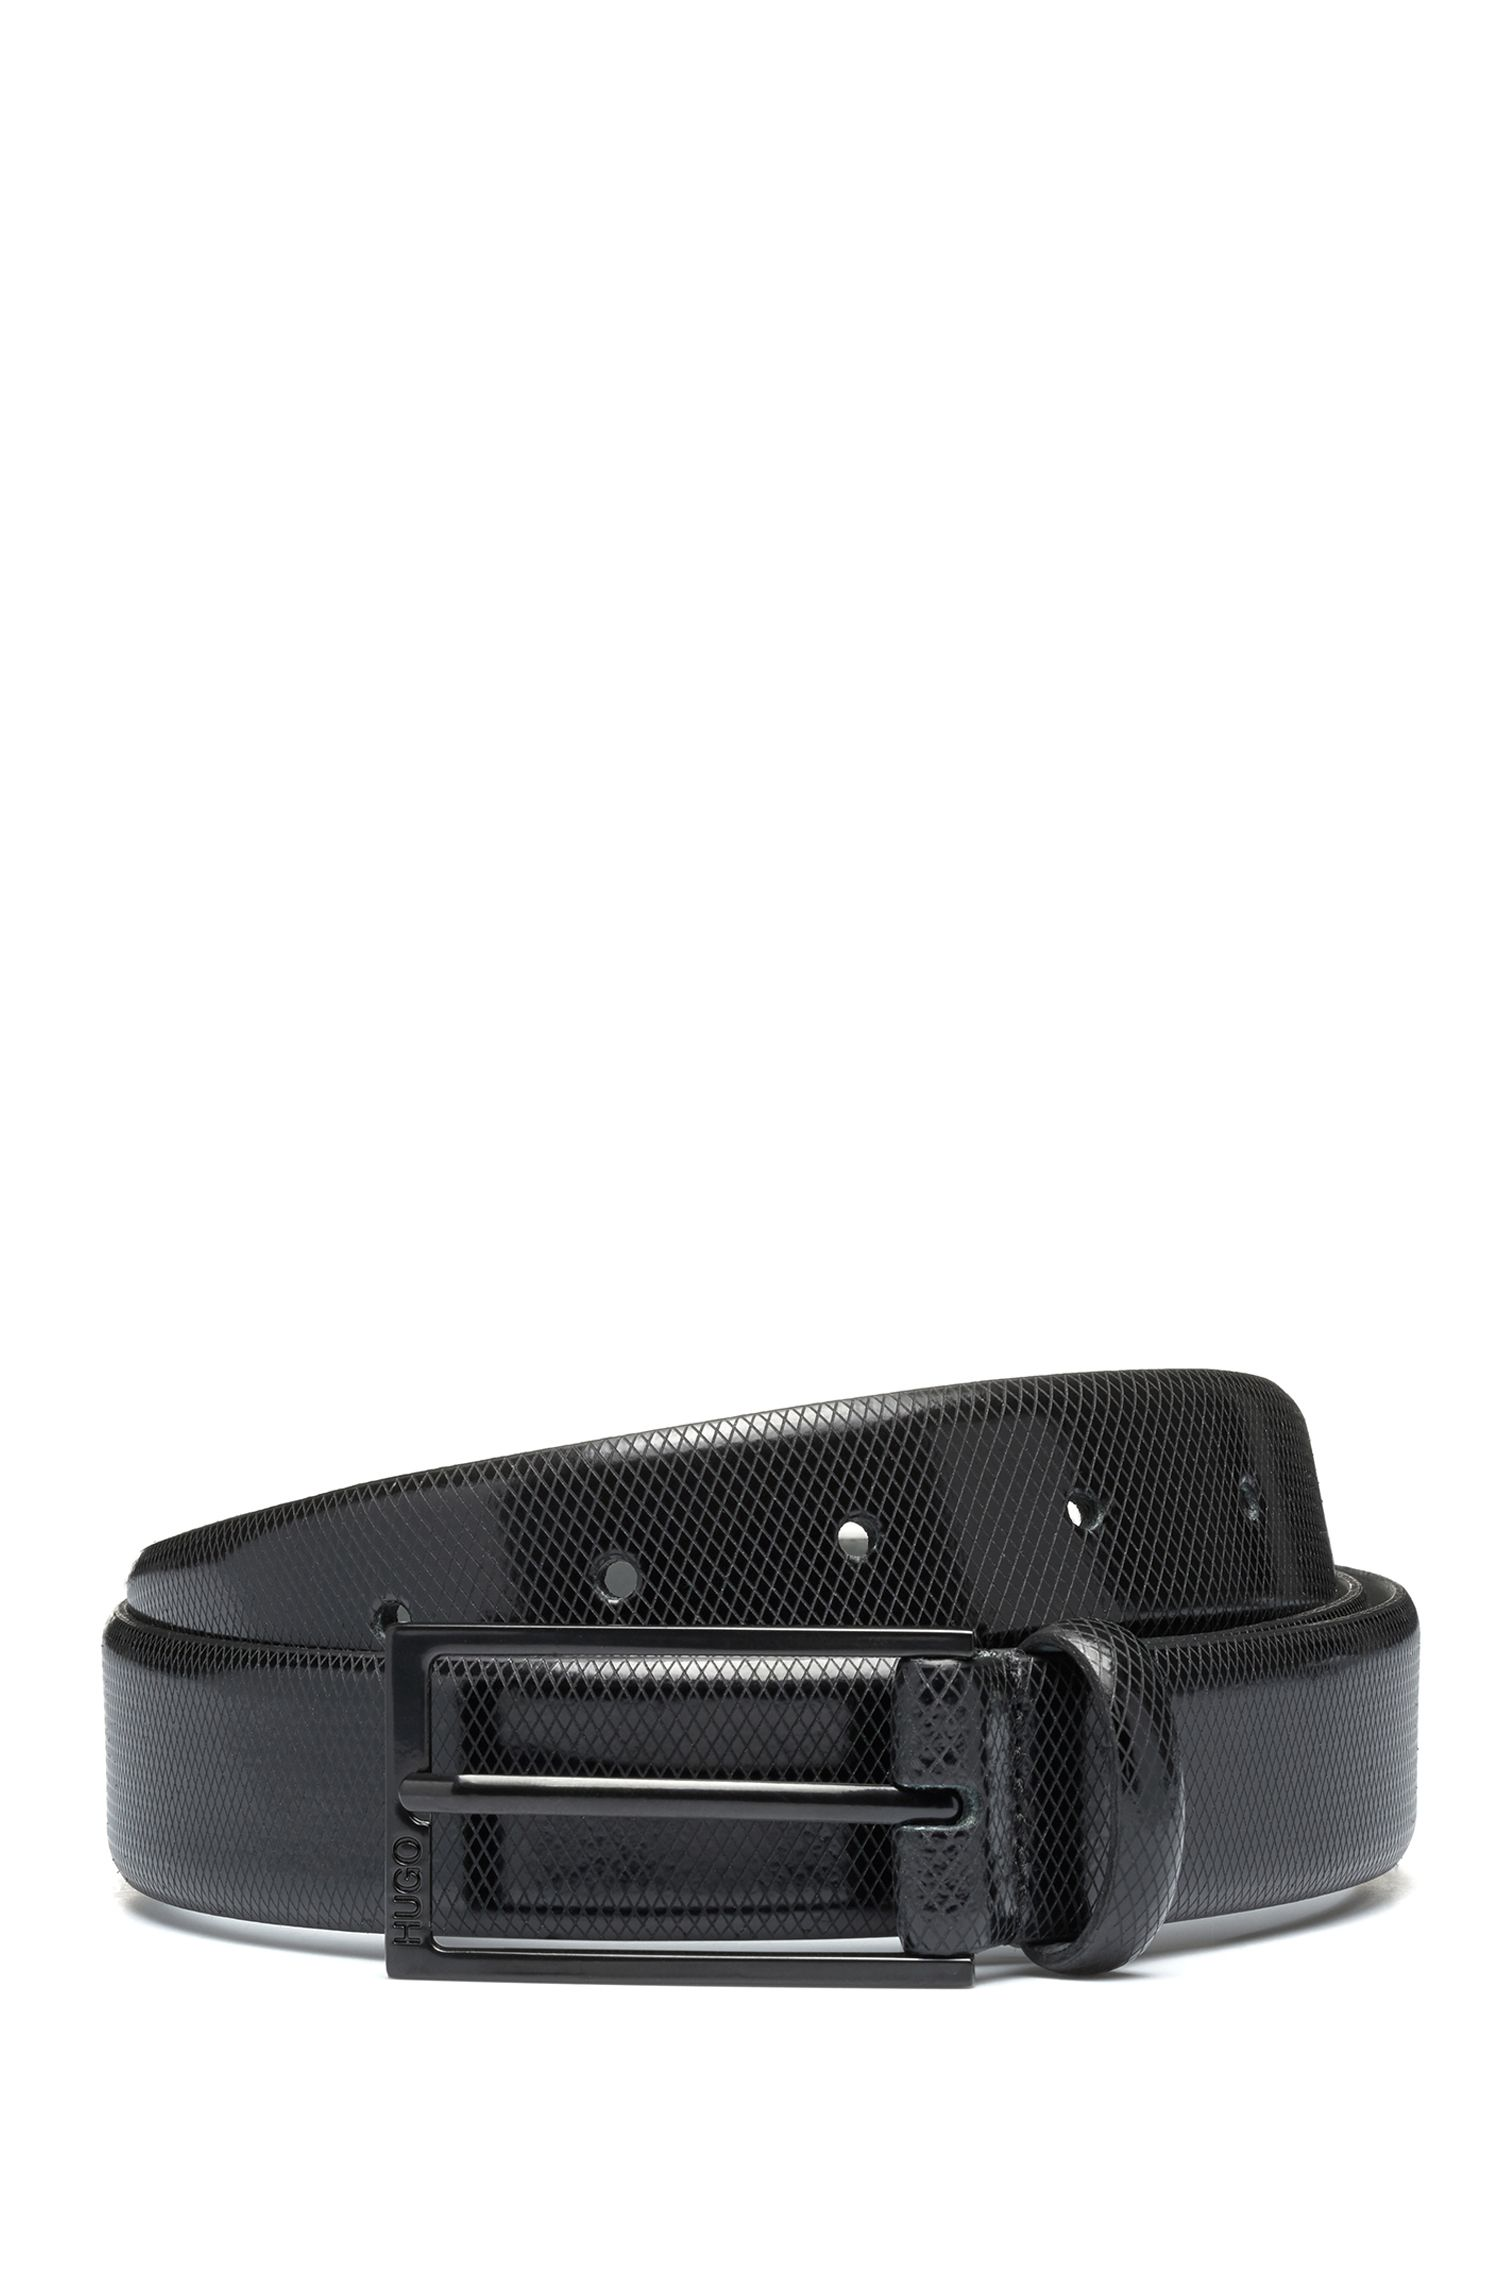 Embossed-leather belt with black varnished hardware